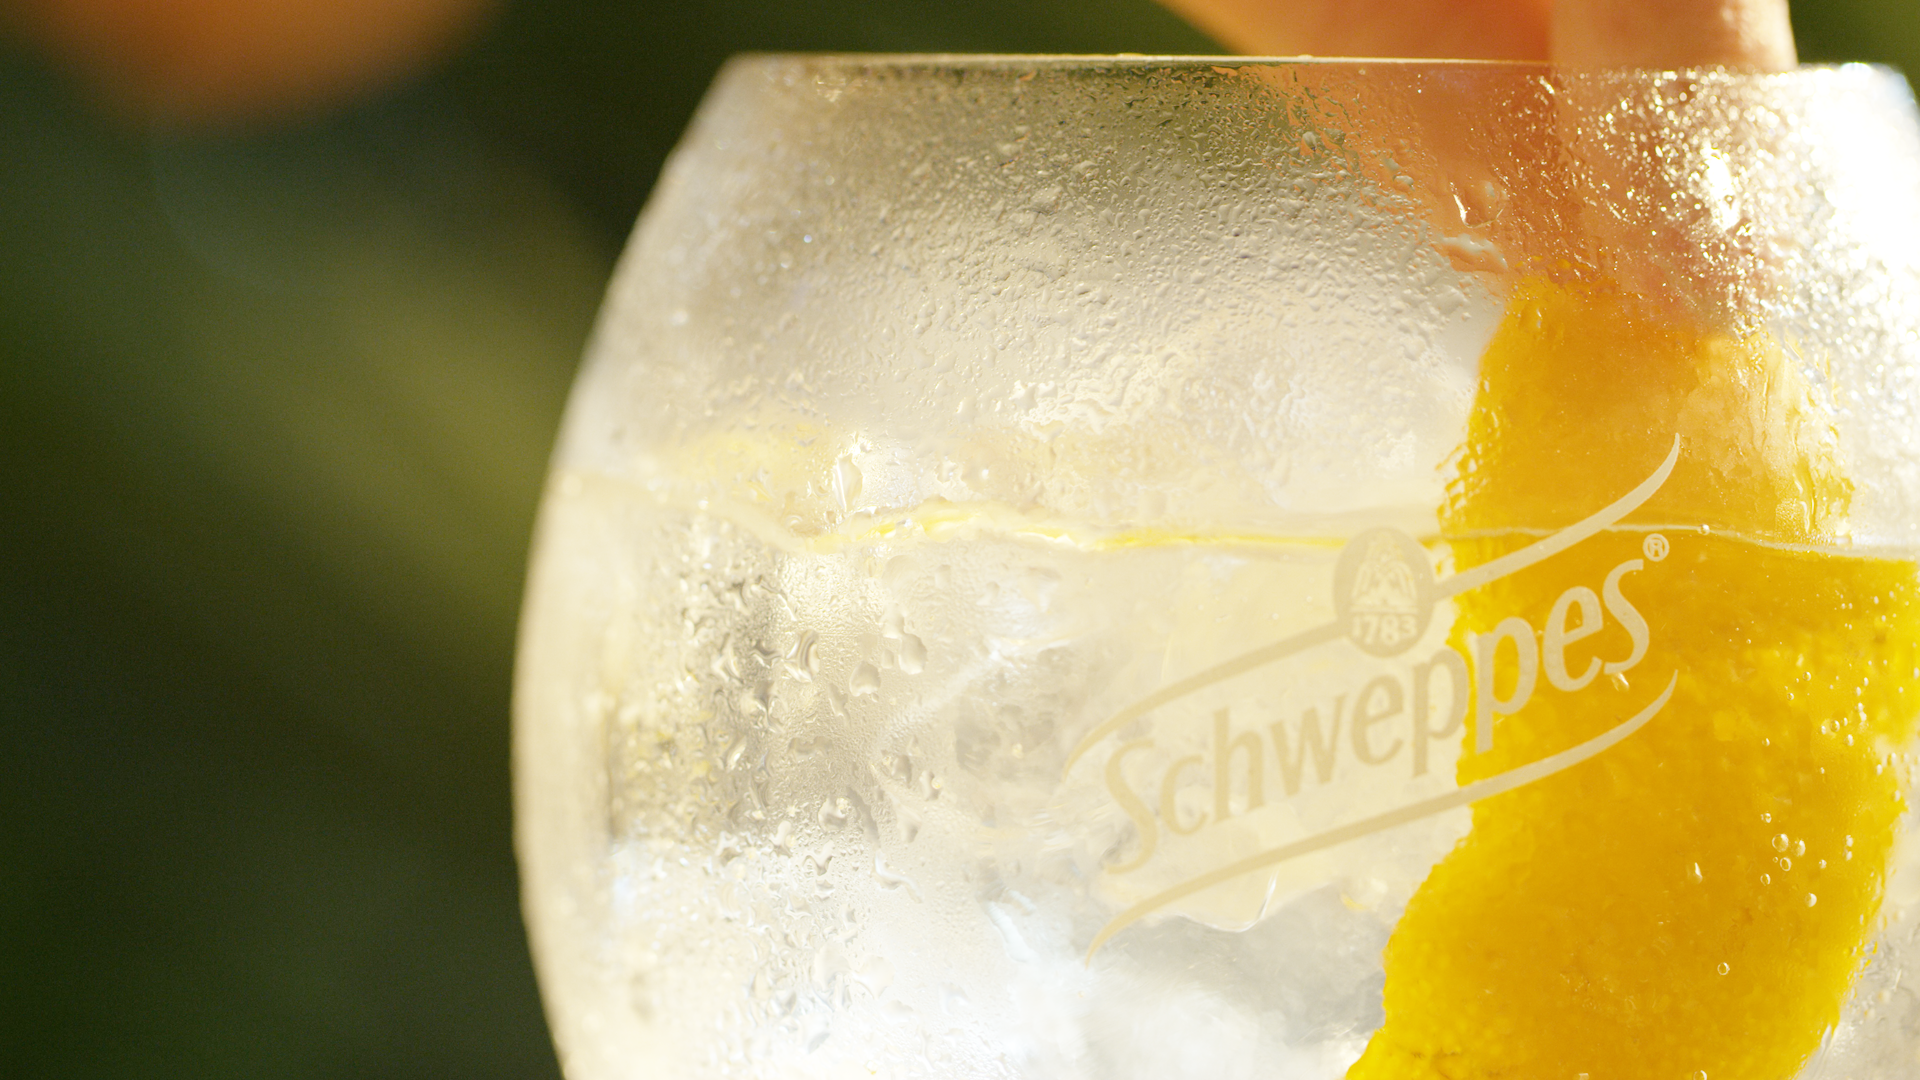 SCHWEPPES – Another world